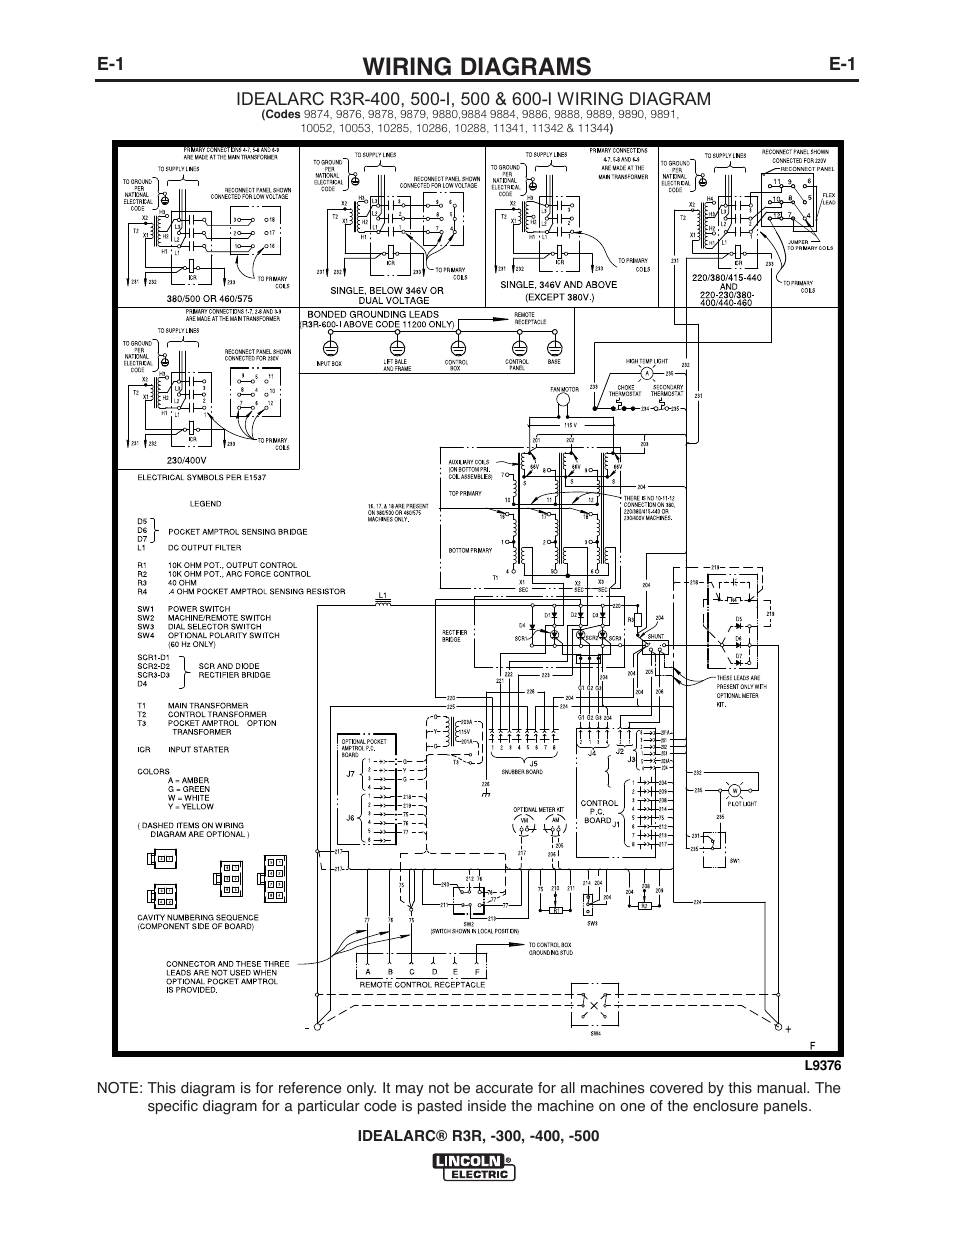 wiring diagrams | lincoln electric im409 idealarc r3r-400 user manual |  page 23 / 32  manuals directory